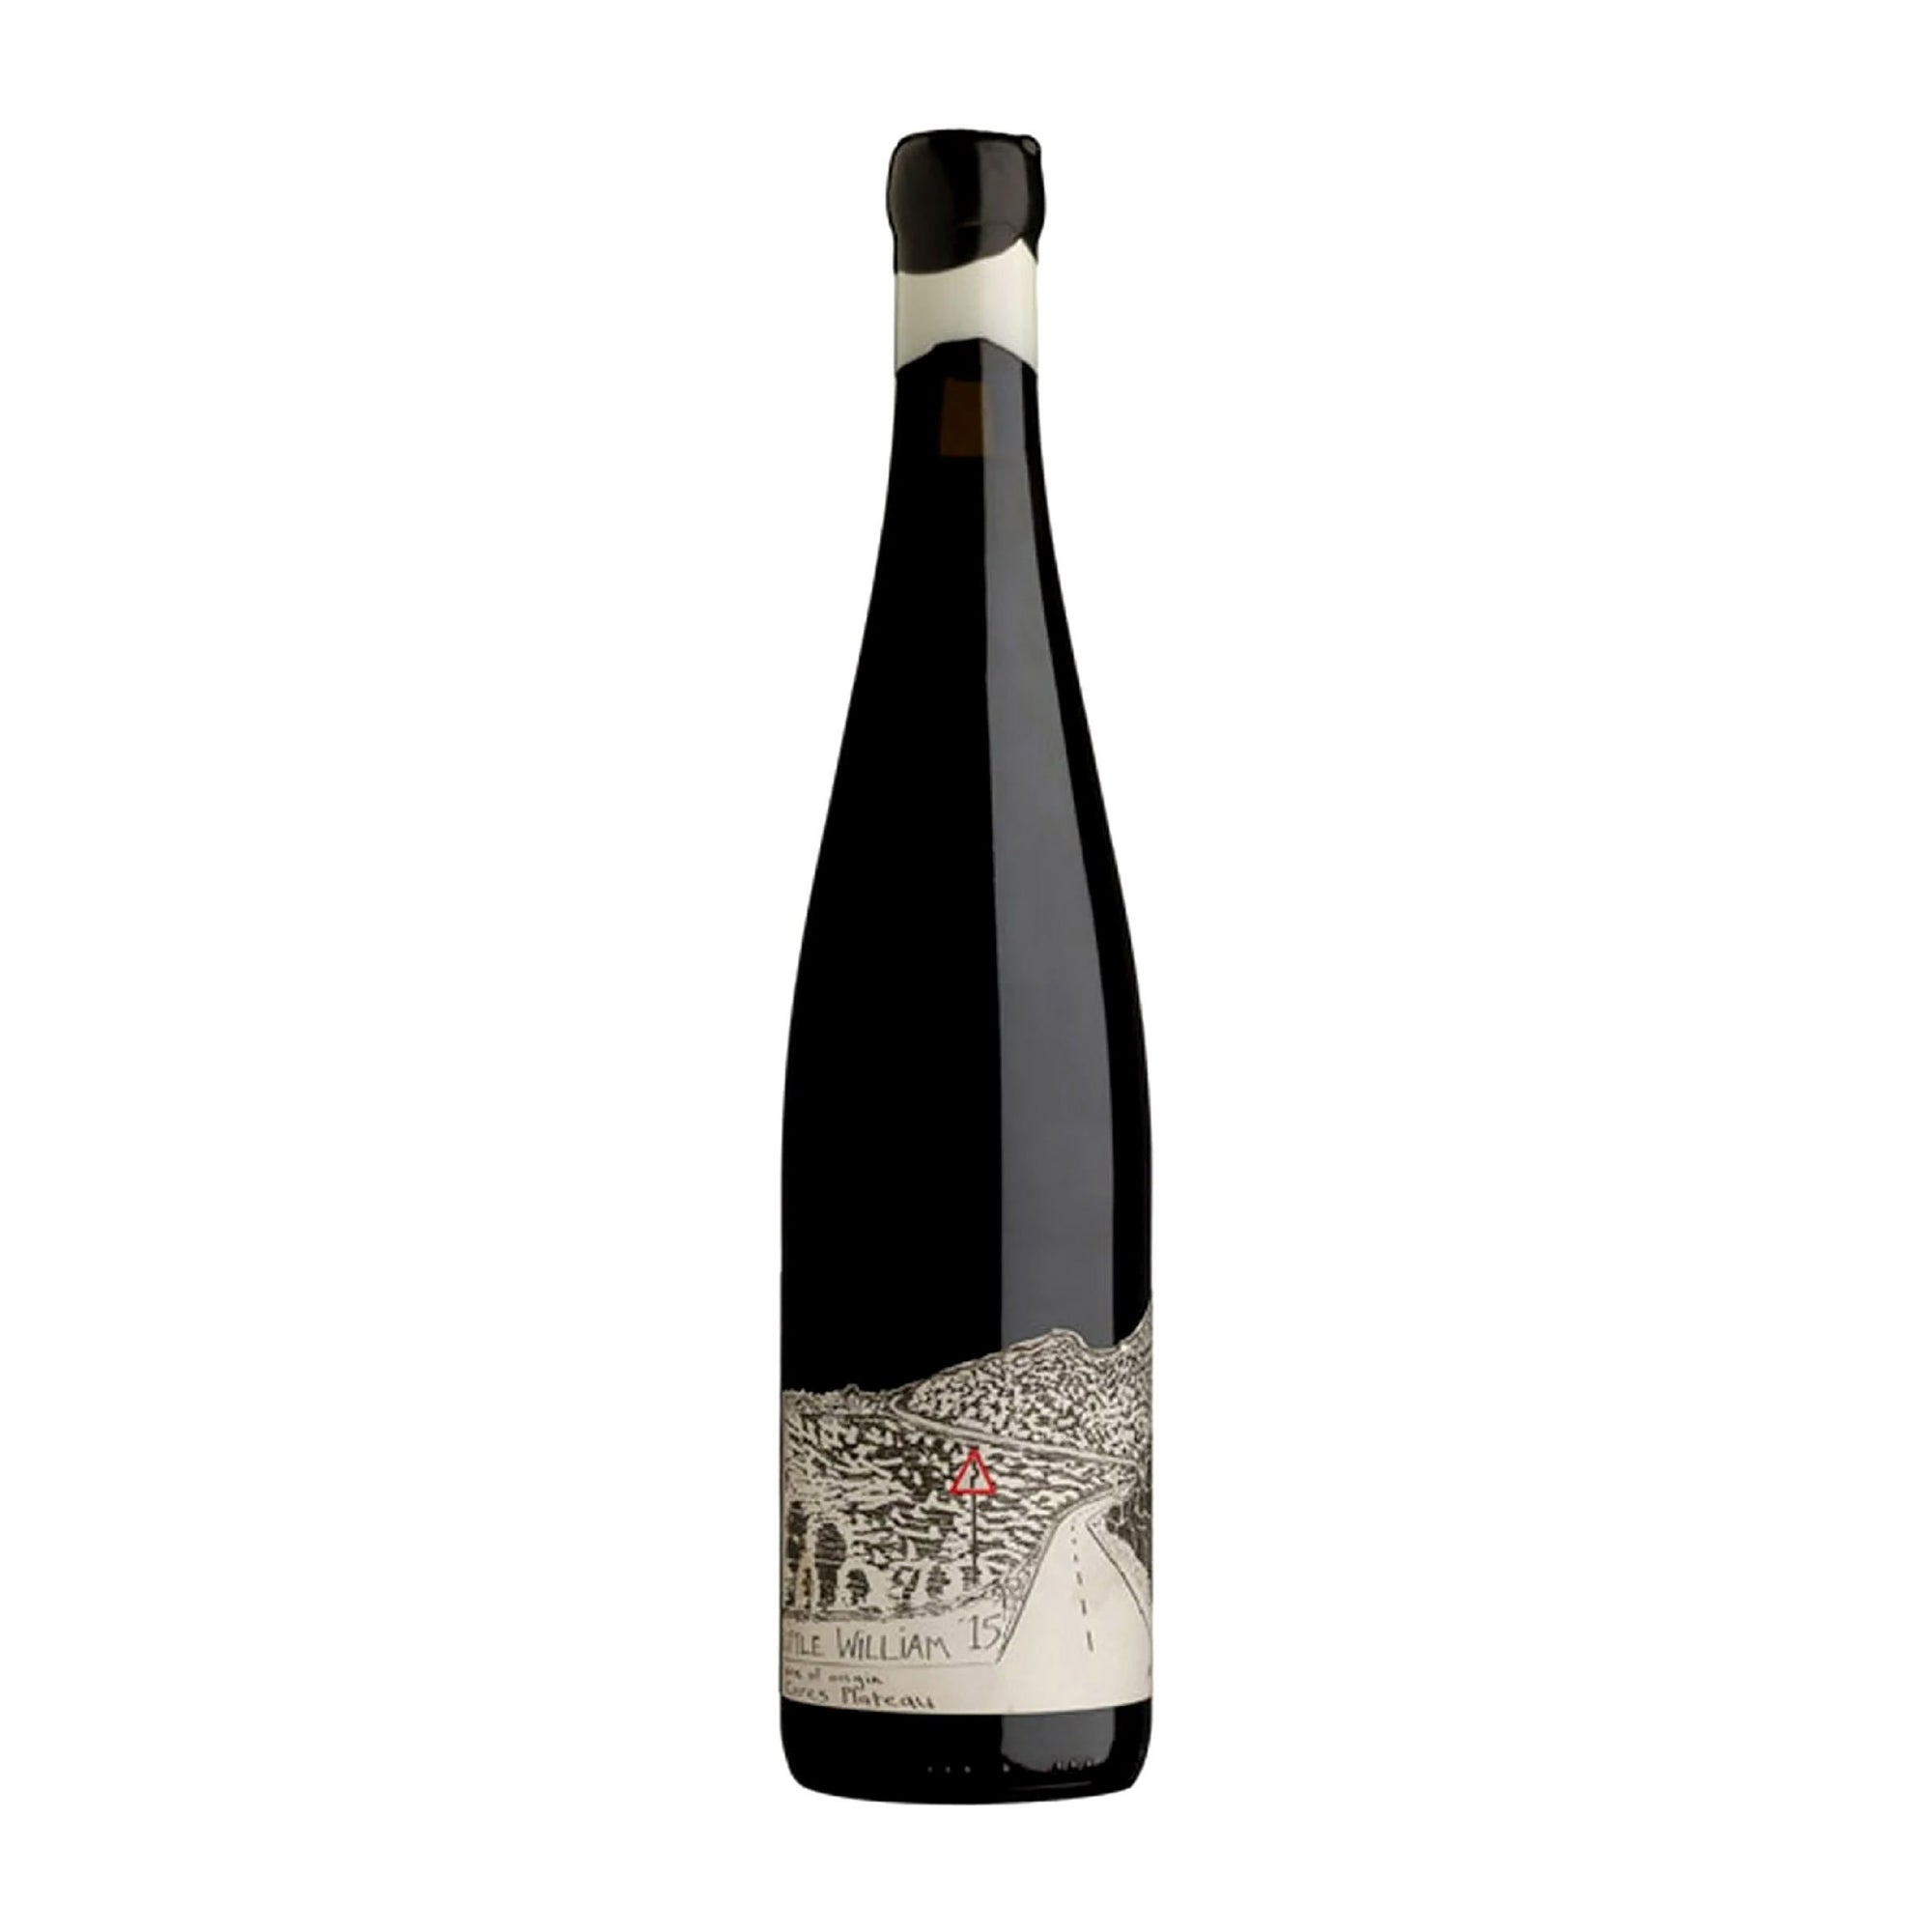 Red Wine BlankBottle 'Little William' Syrah 2018 (4397655752727)